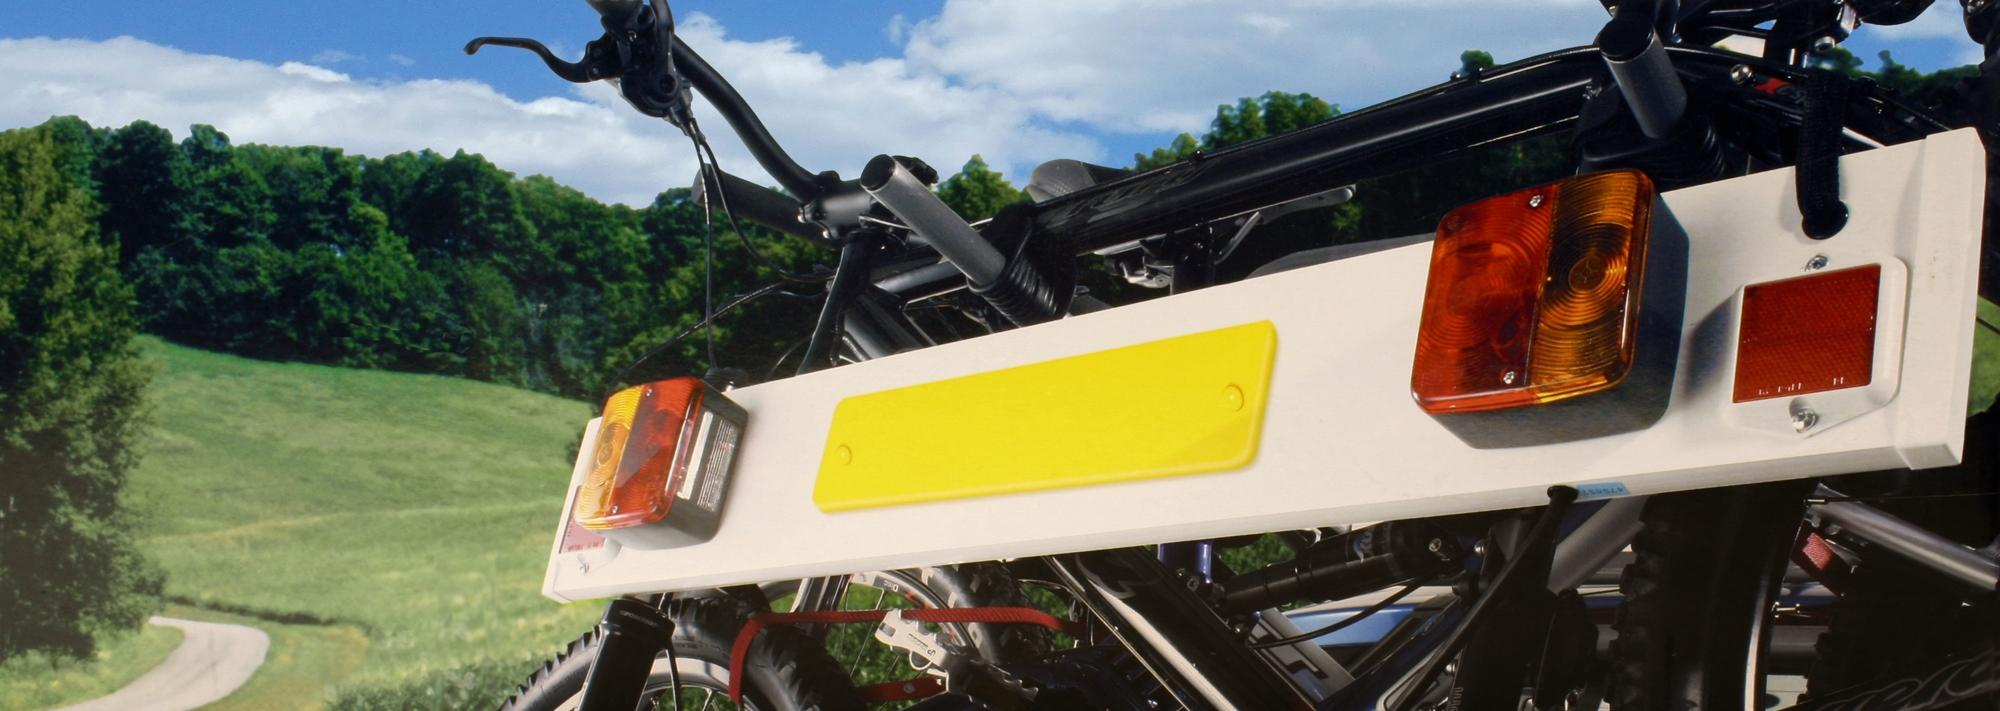 Halfords Cycle Carrier Lighting Board  sc 1 st  Halfords & Halfords Cycle Carrier Lighting Boa... azcodes.com